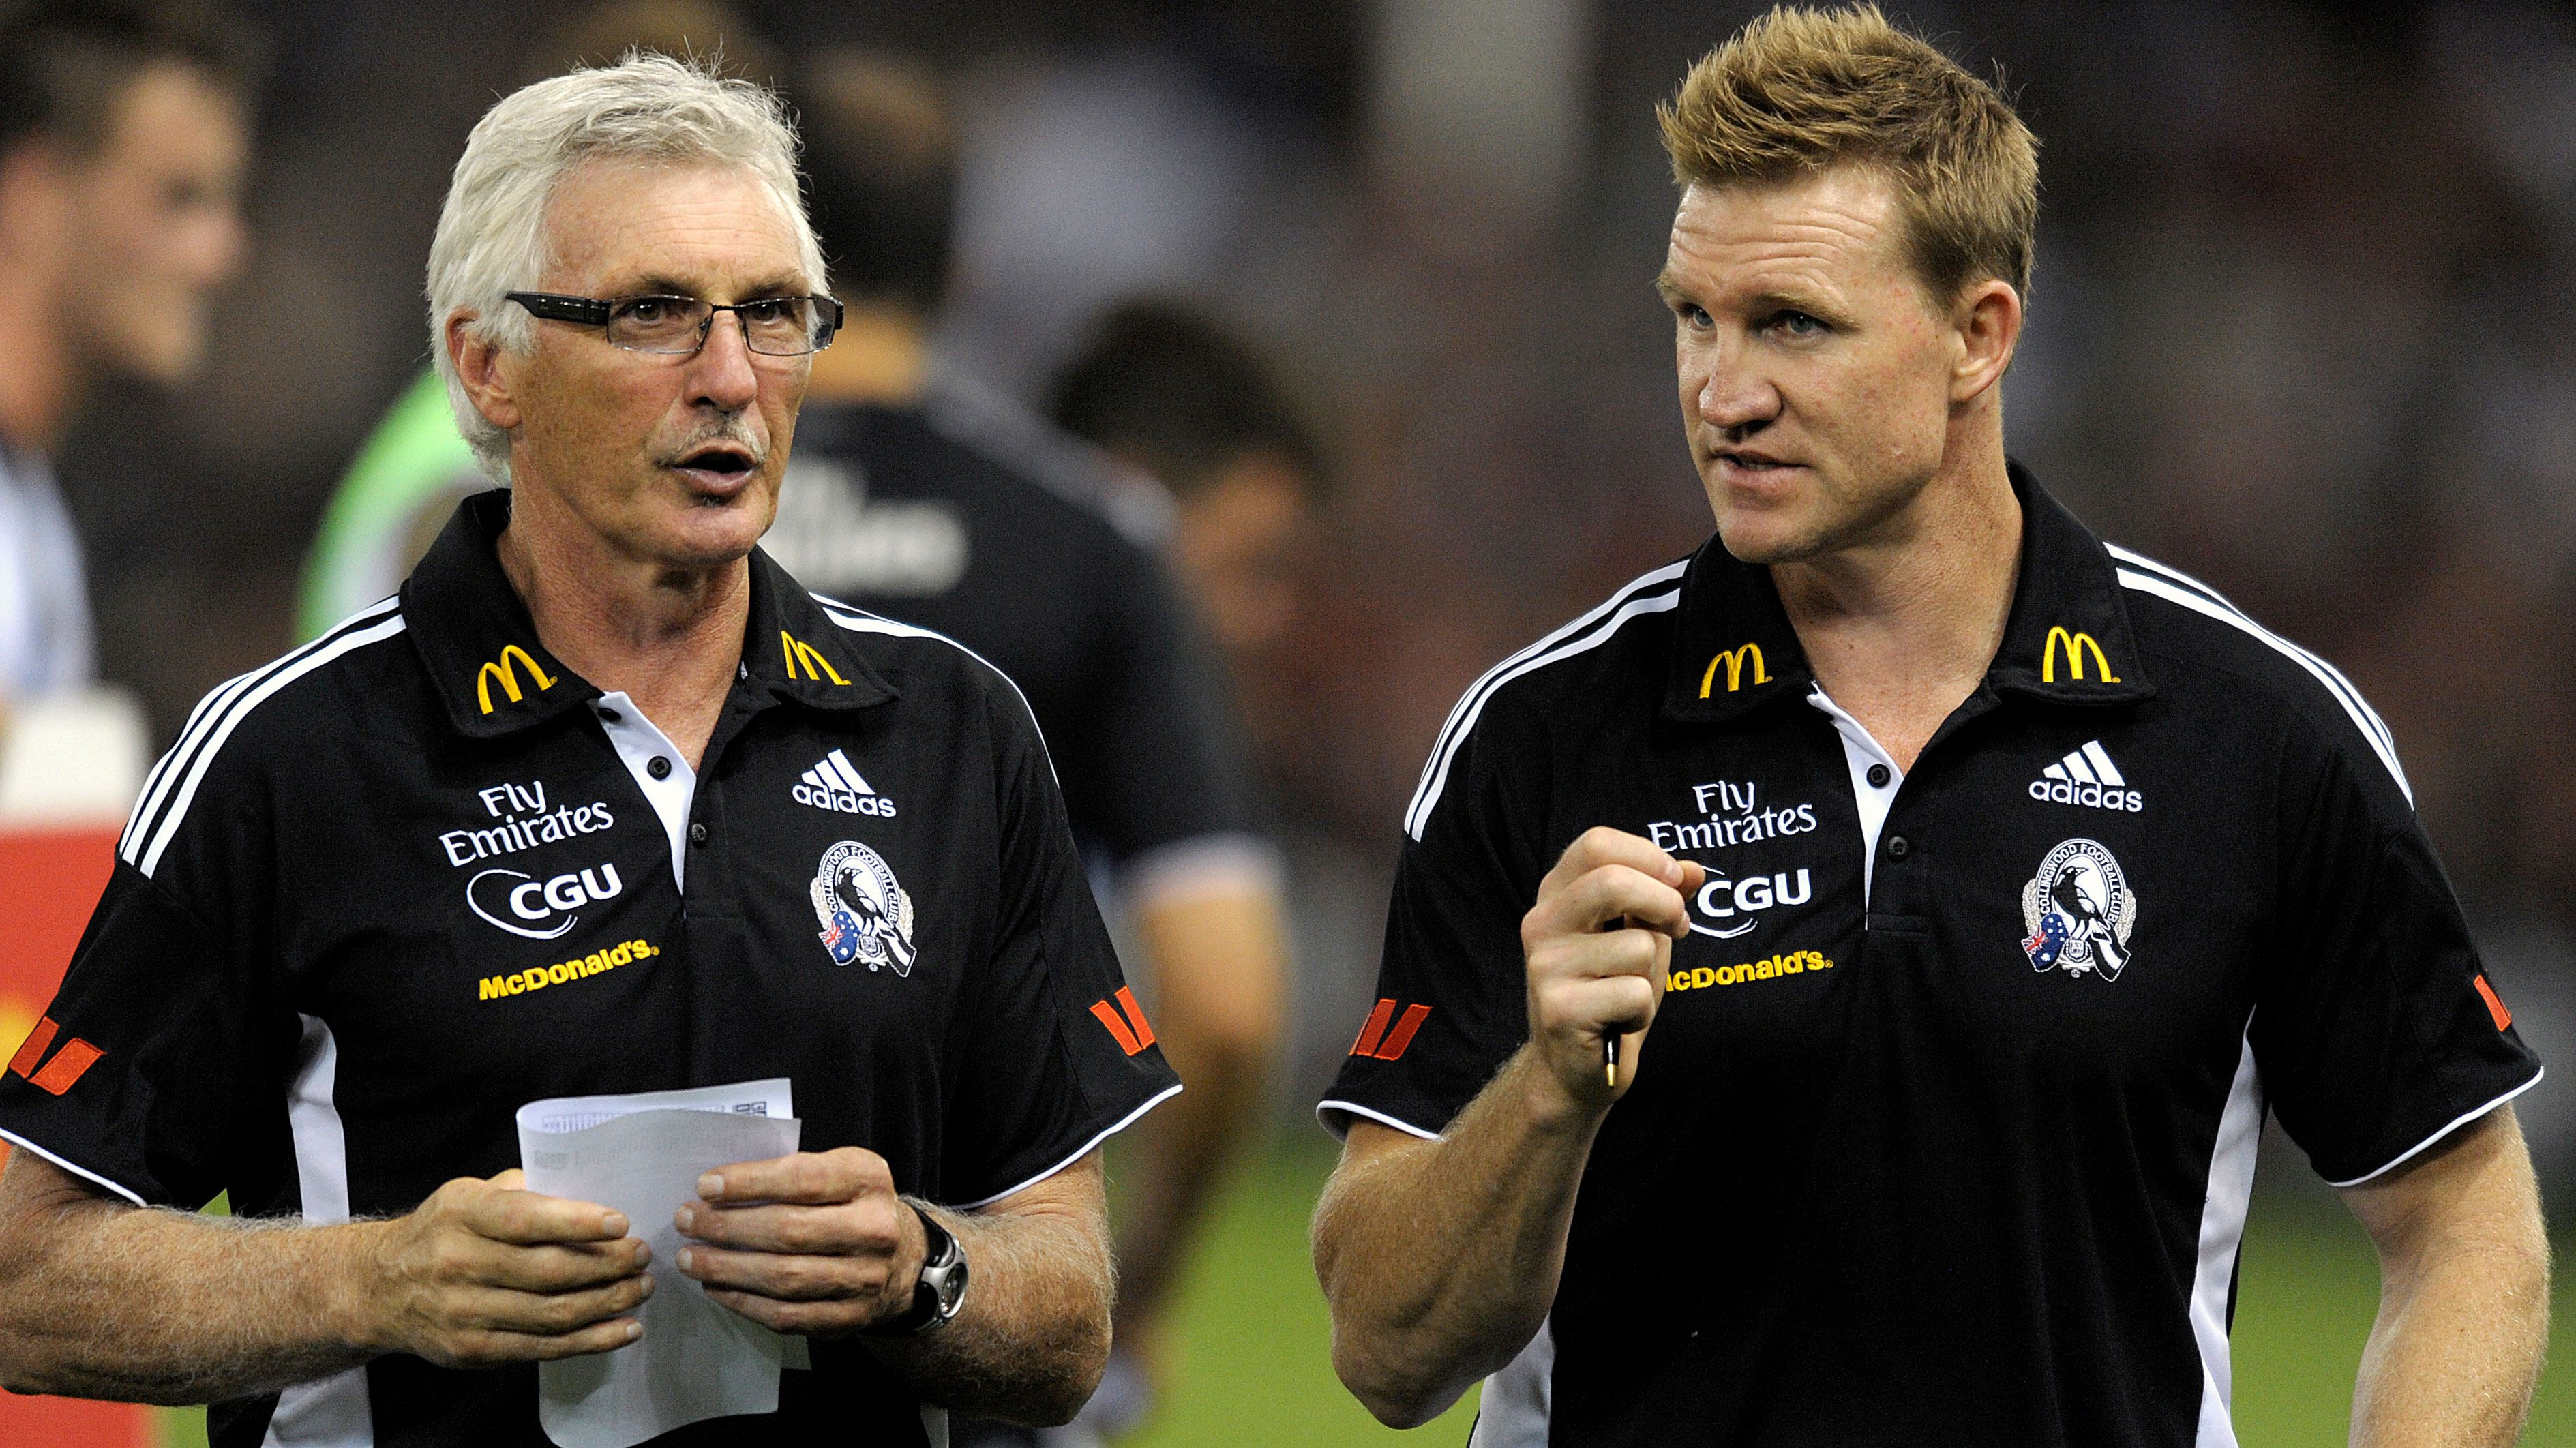 Nathan Buckley's frank admission about feud with former Collingwood mentor Mick Malthouse